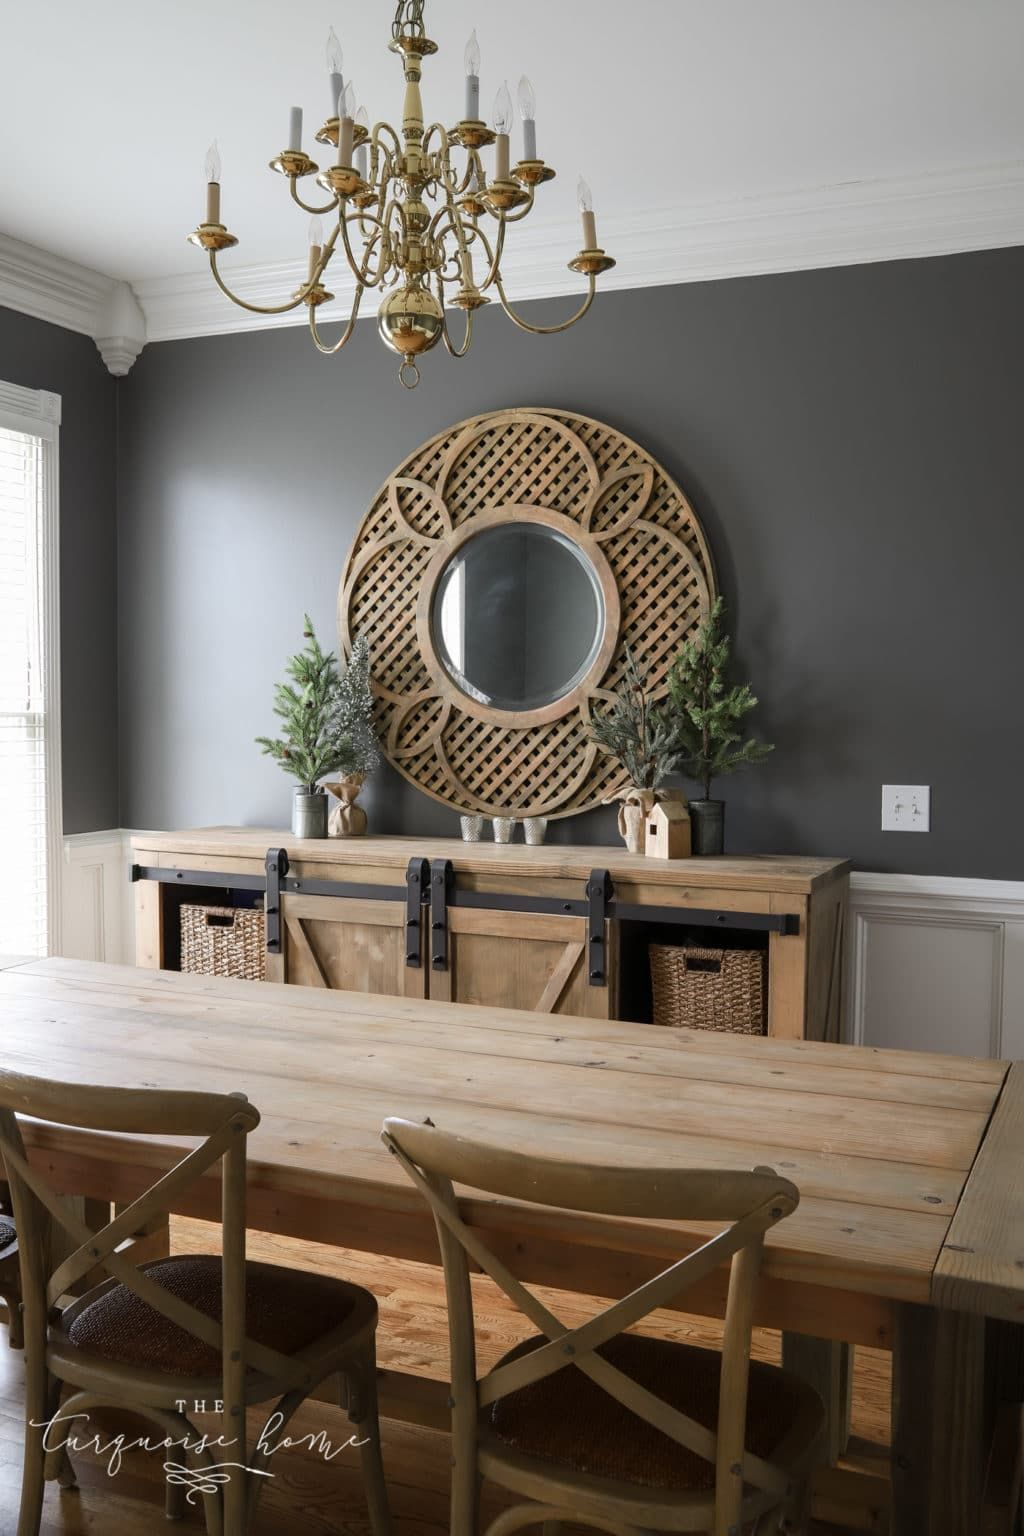 Charcoal Painted Walls In My Dining Room Dining Room Makeover Dining Room Small Dining Room Colors